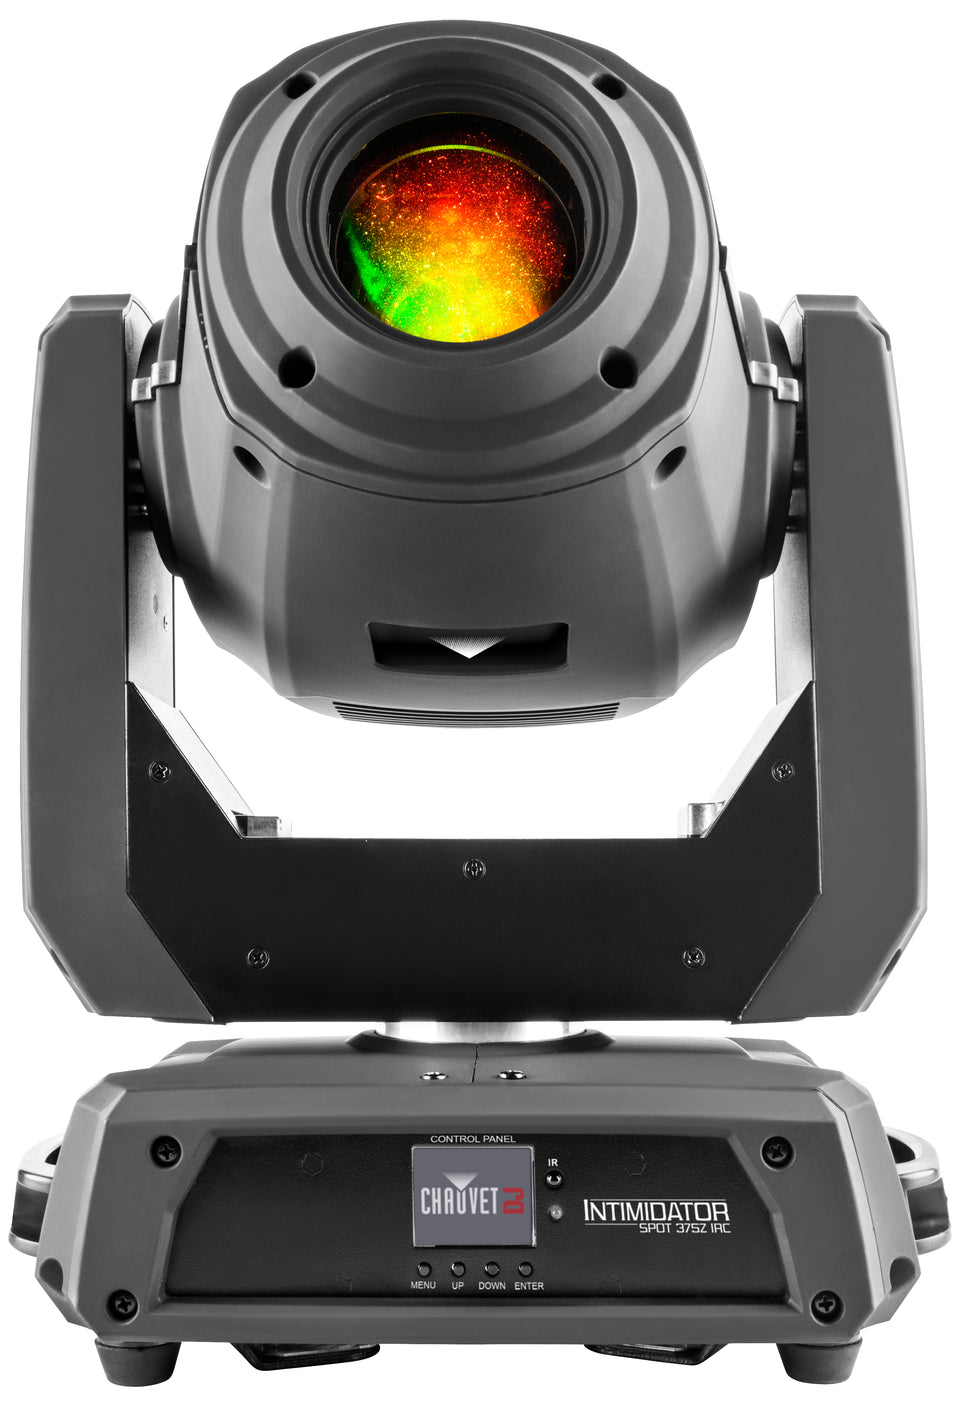 CHAUVET DJ Intimidator Spot 375Z IRC Moving Head Light